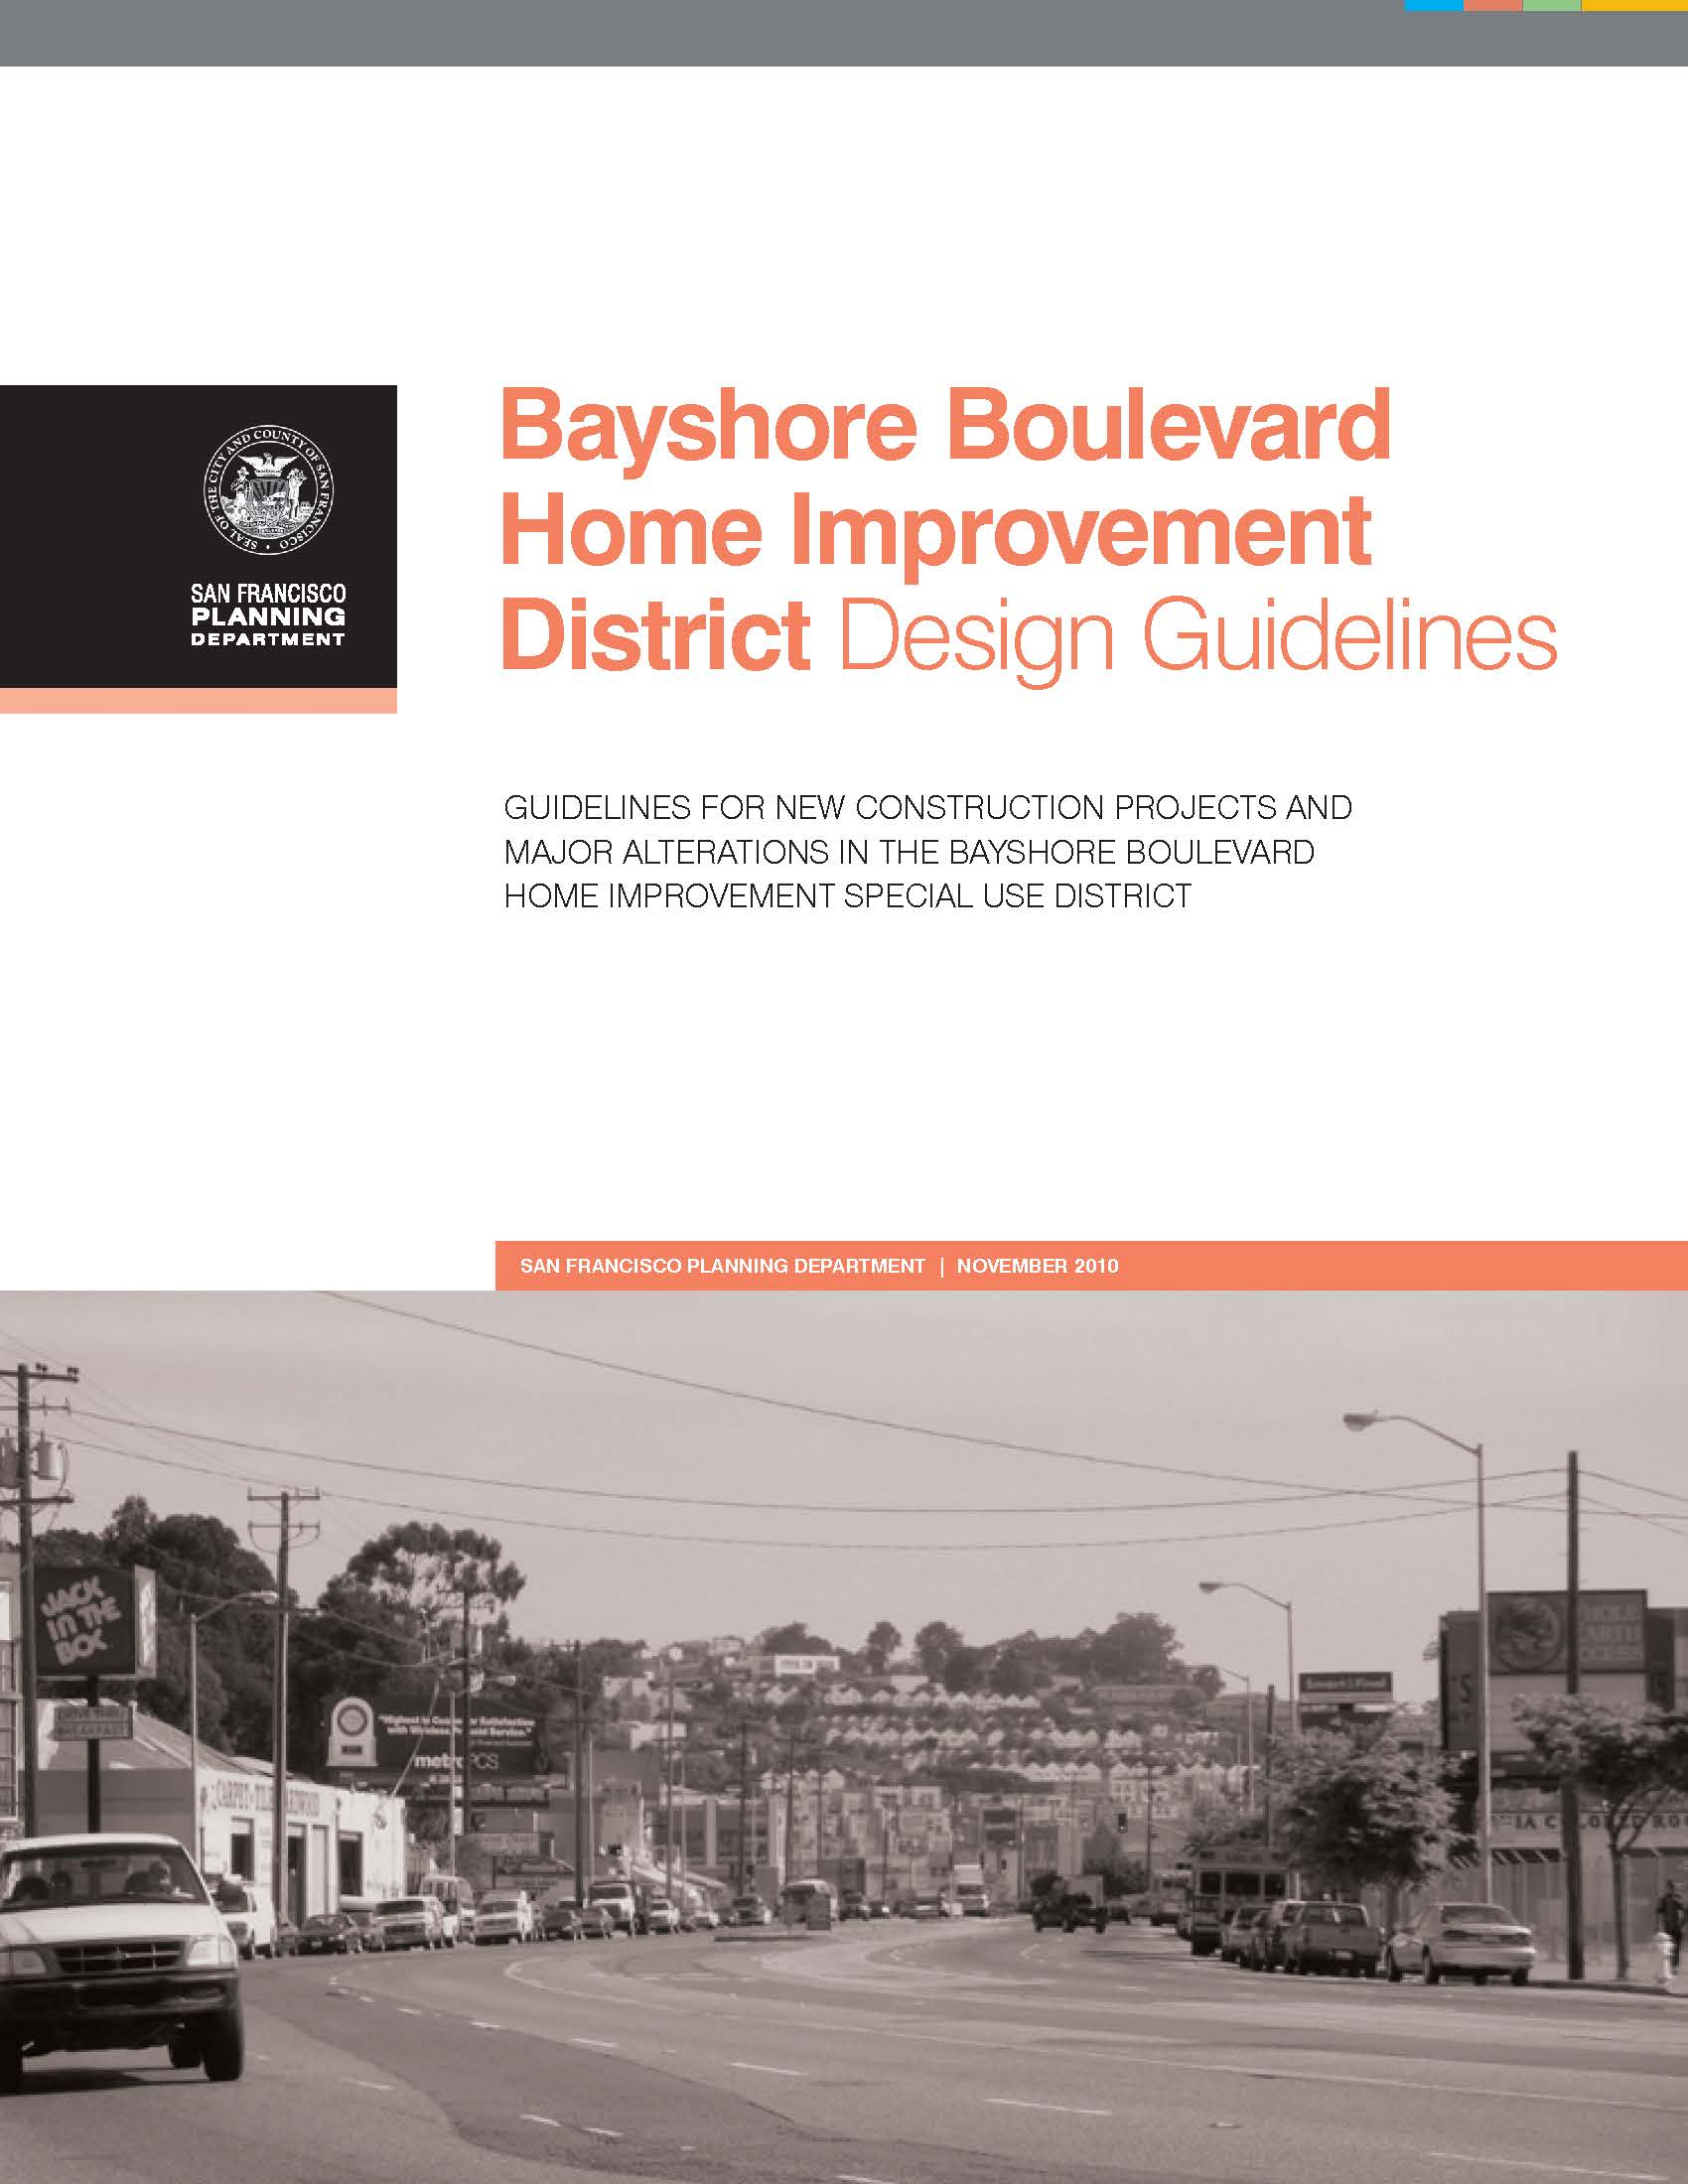 Cover Image for the Bayshore Blvd Home Improvement Design Guidelines